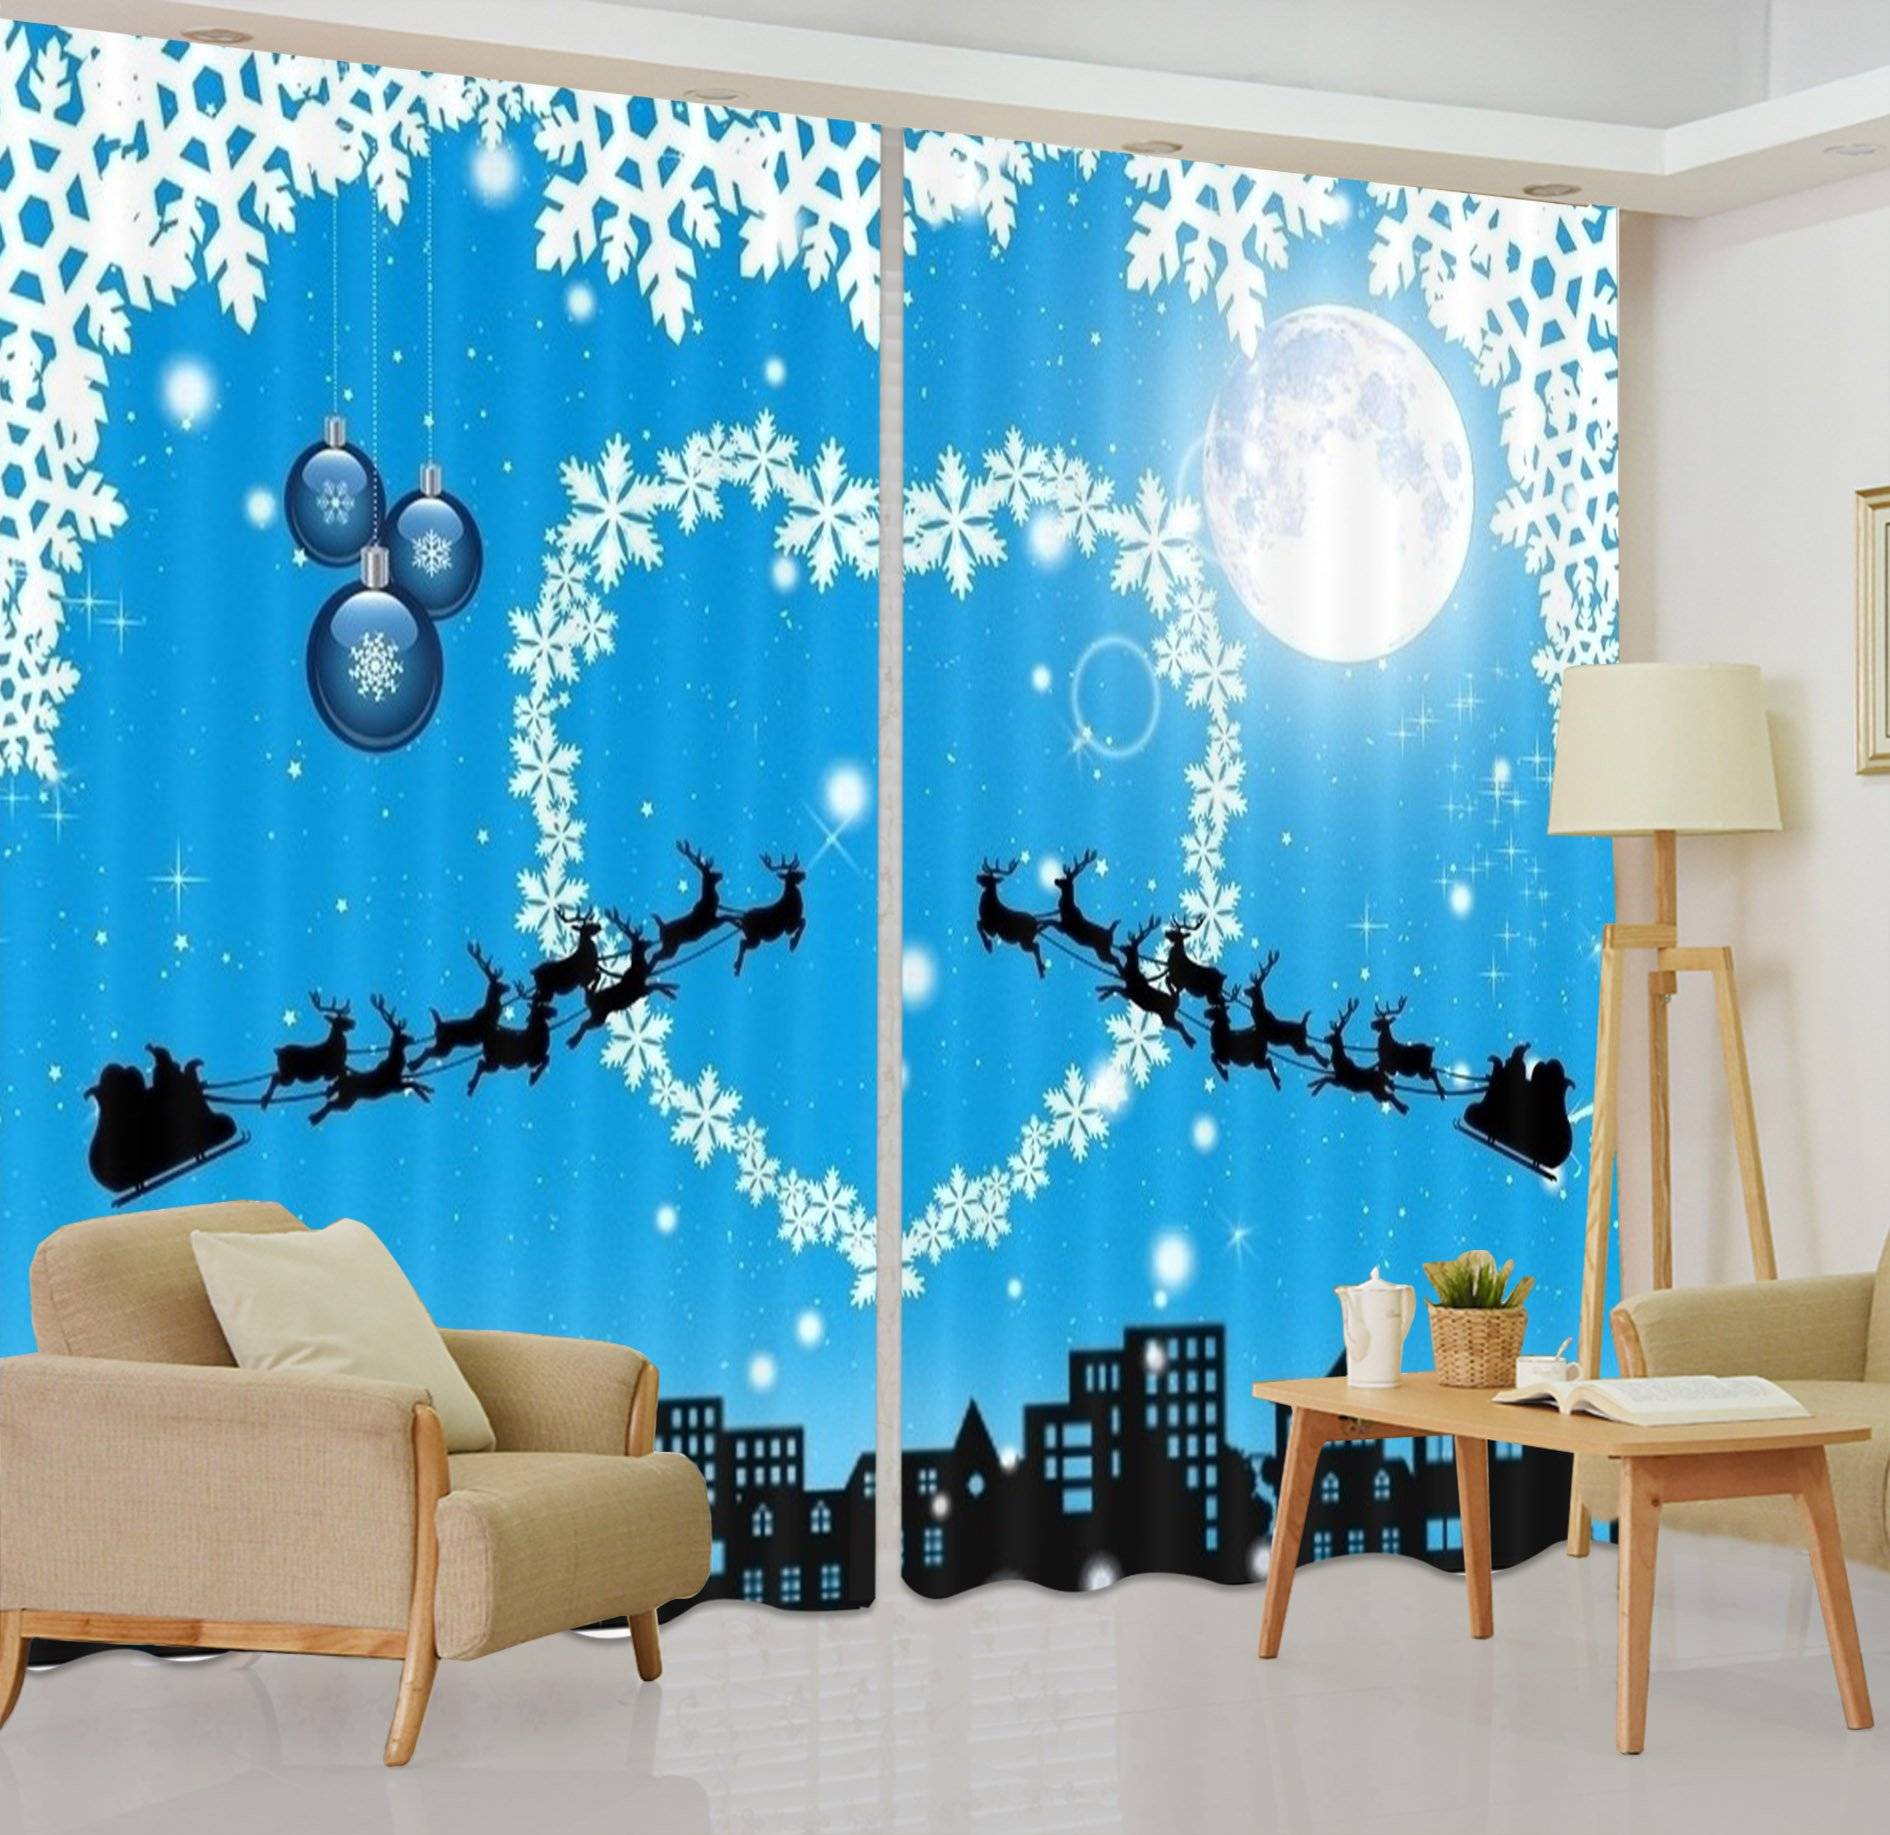 LB Christmas Decorations Blackout Curtains for Kids Room,Christmas Night 3D Effect Print Window Treatment Living Room Bedroom Scenery Window Drapes 2 Panels Set,118W x 108L Inches